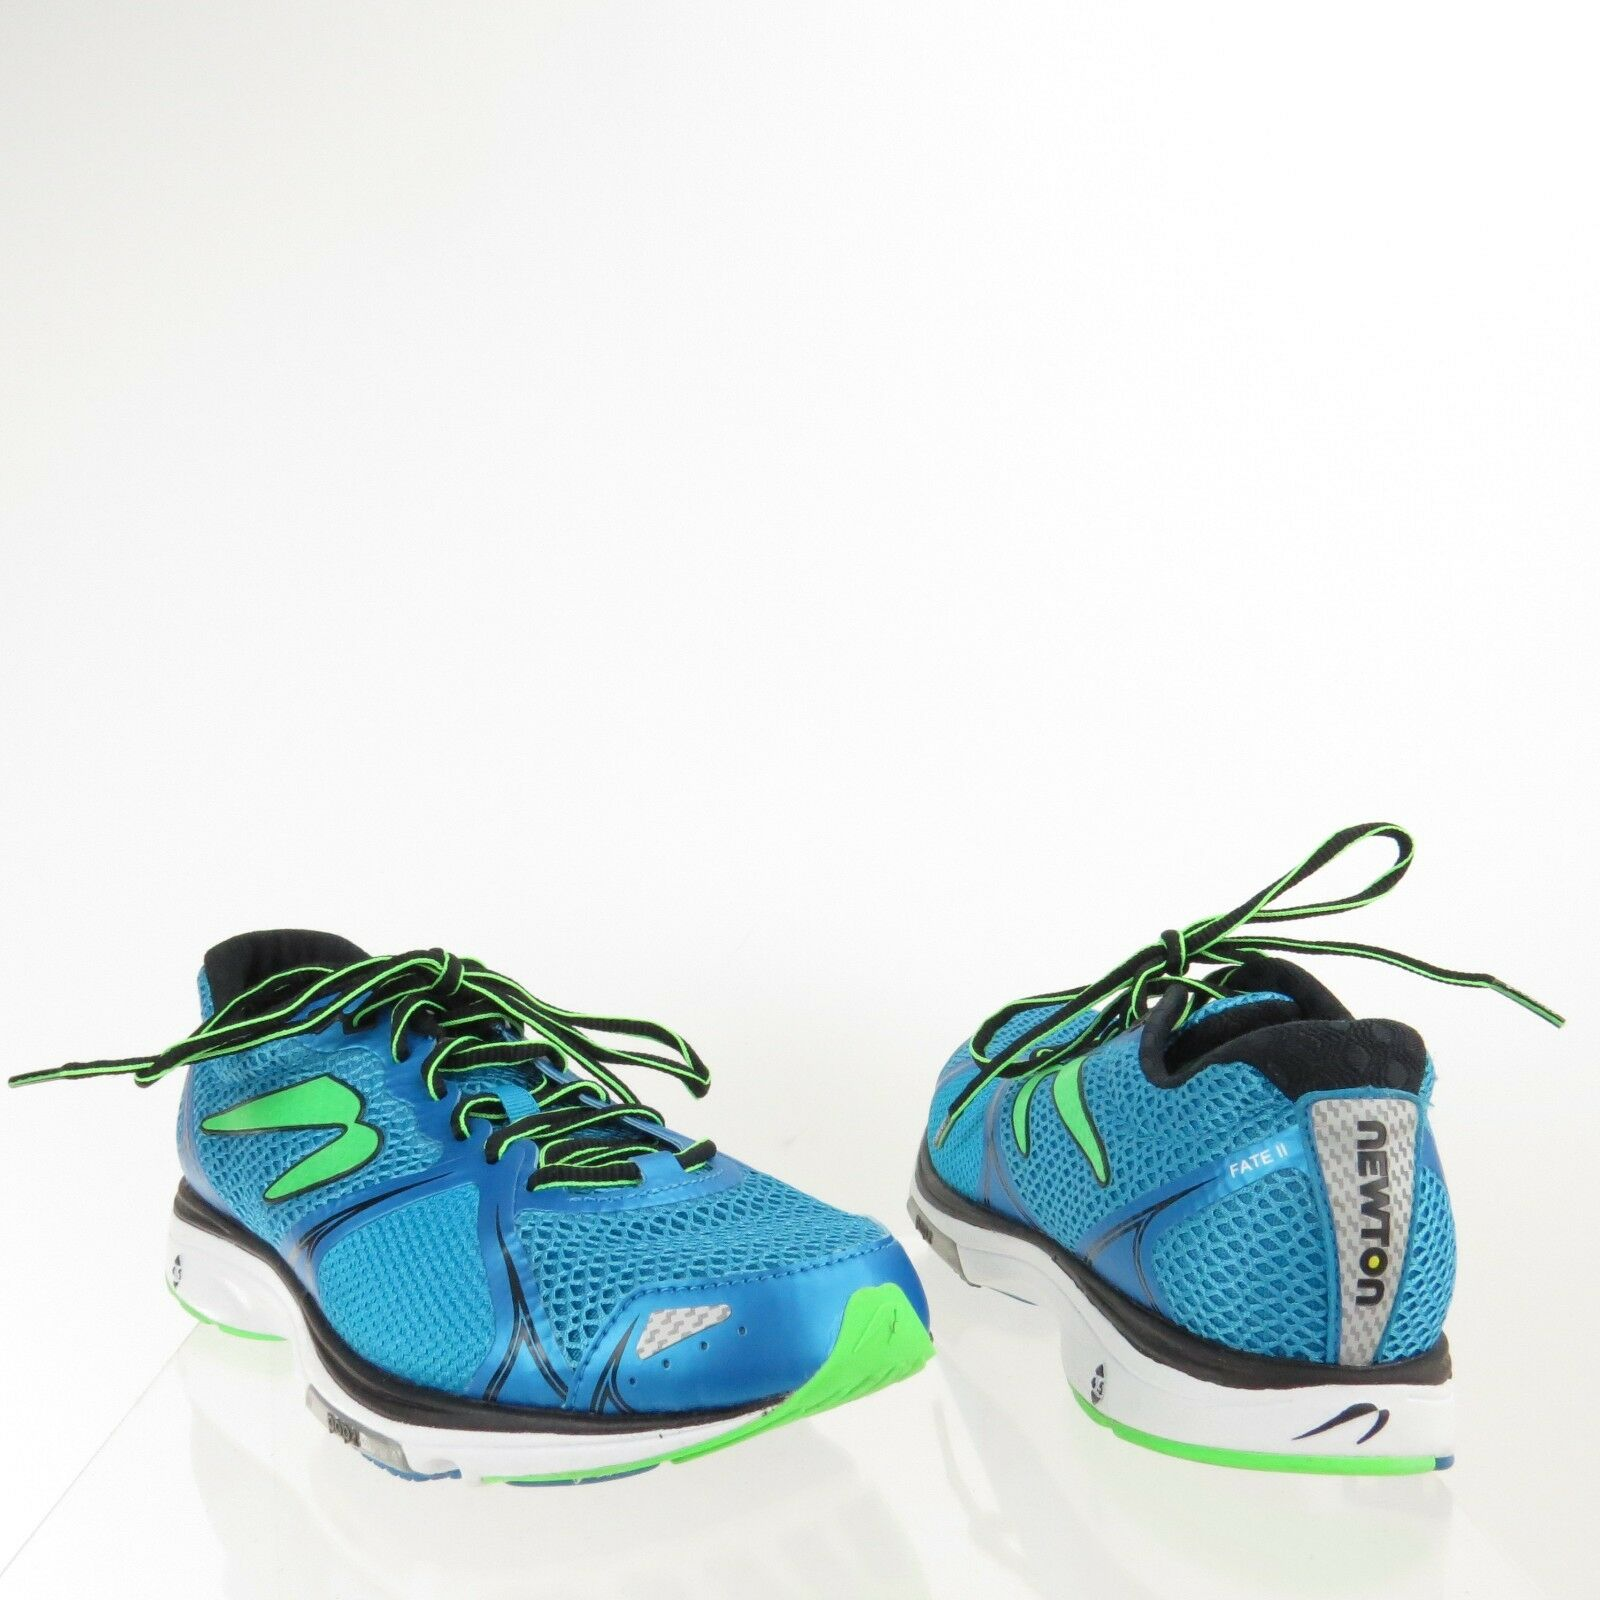 Men's Newton Fate II shoes bluee Synthetic Running Sneakers Size 7.5 M